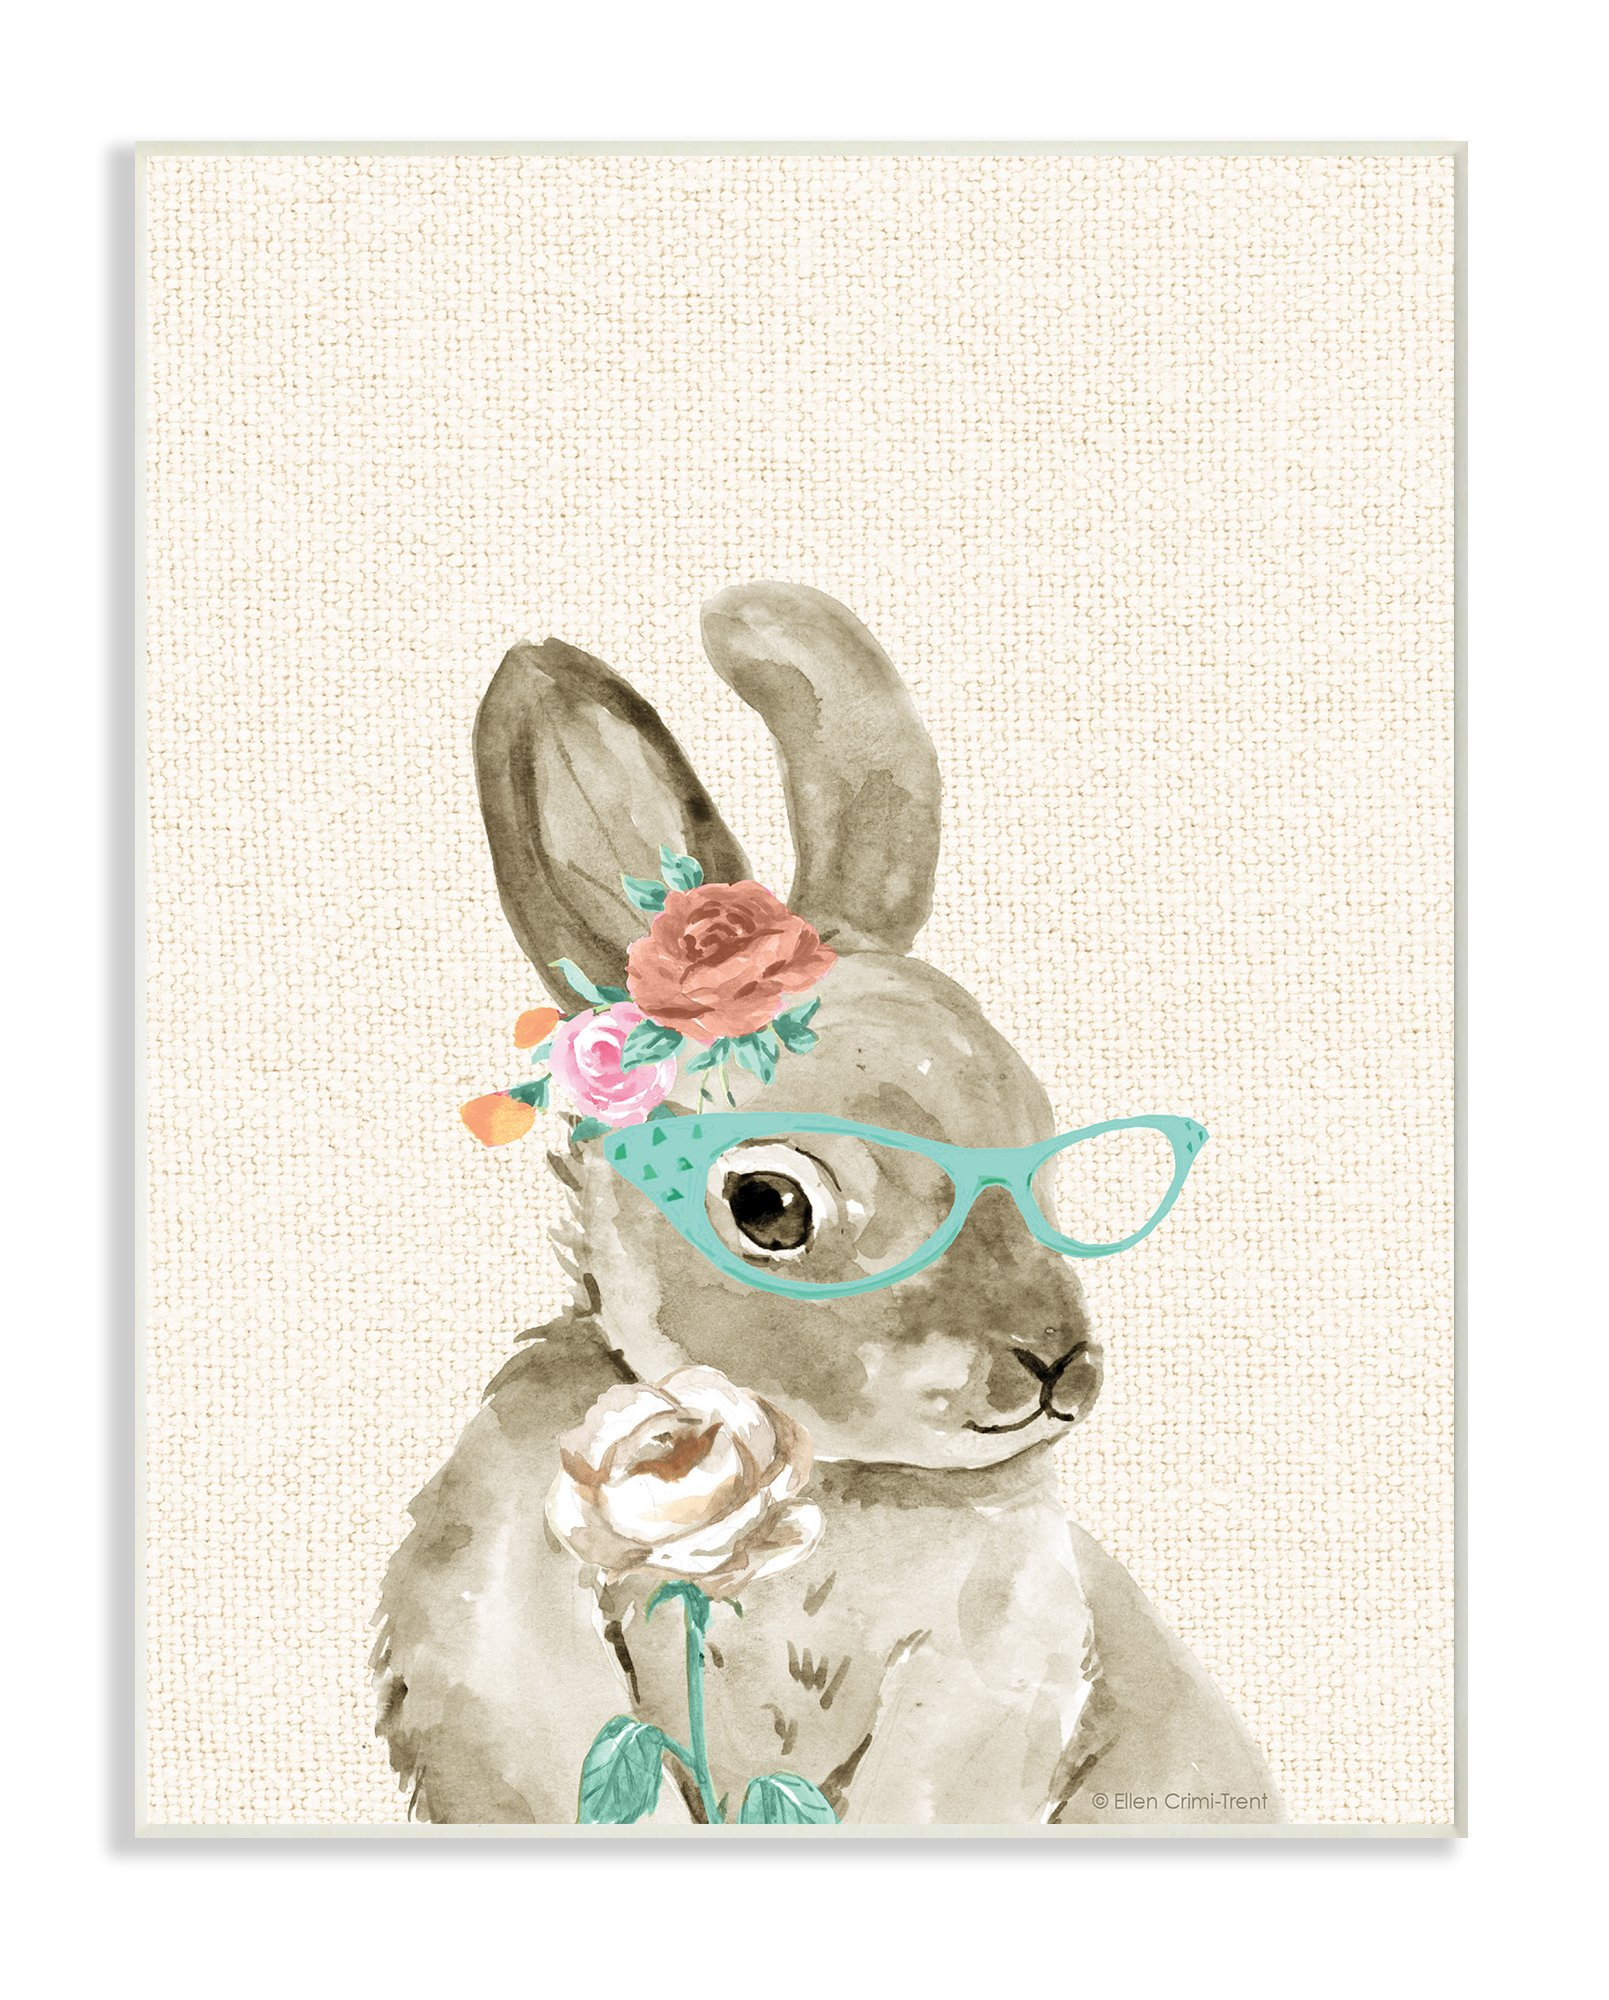 The Stupell Home Decor Collection Stupell Industries Woodland Bunny with Cat Eye Glasses Wall Plaque Art, 10 x 0.5 x 15, Proudly Made in USA